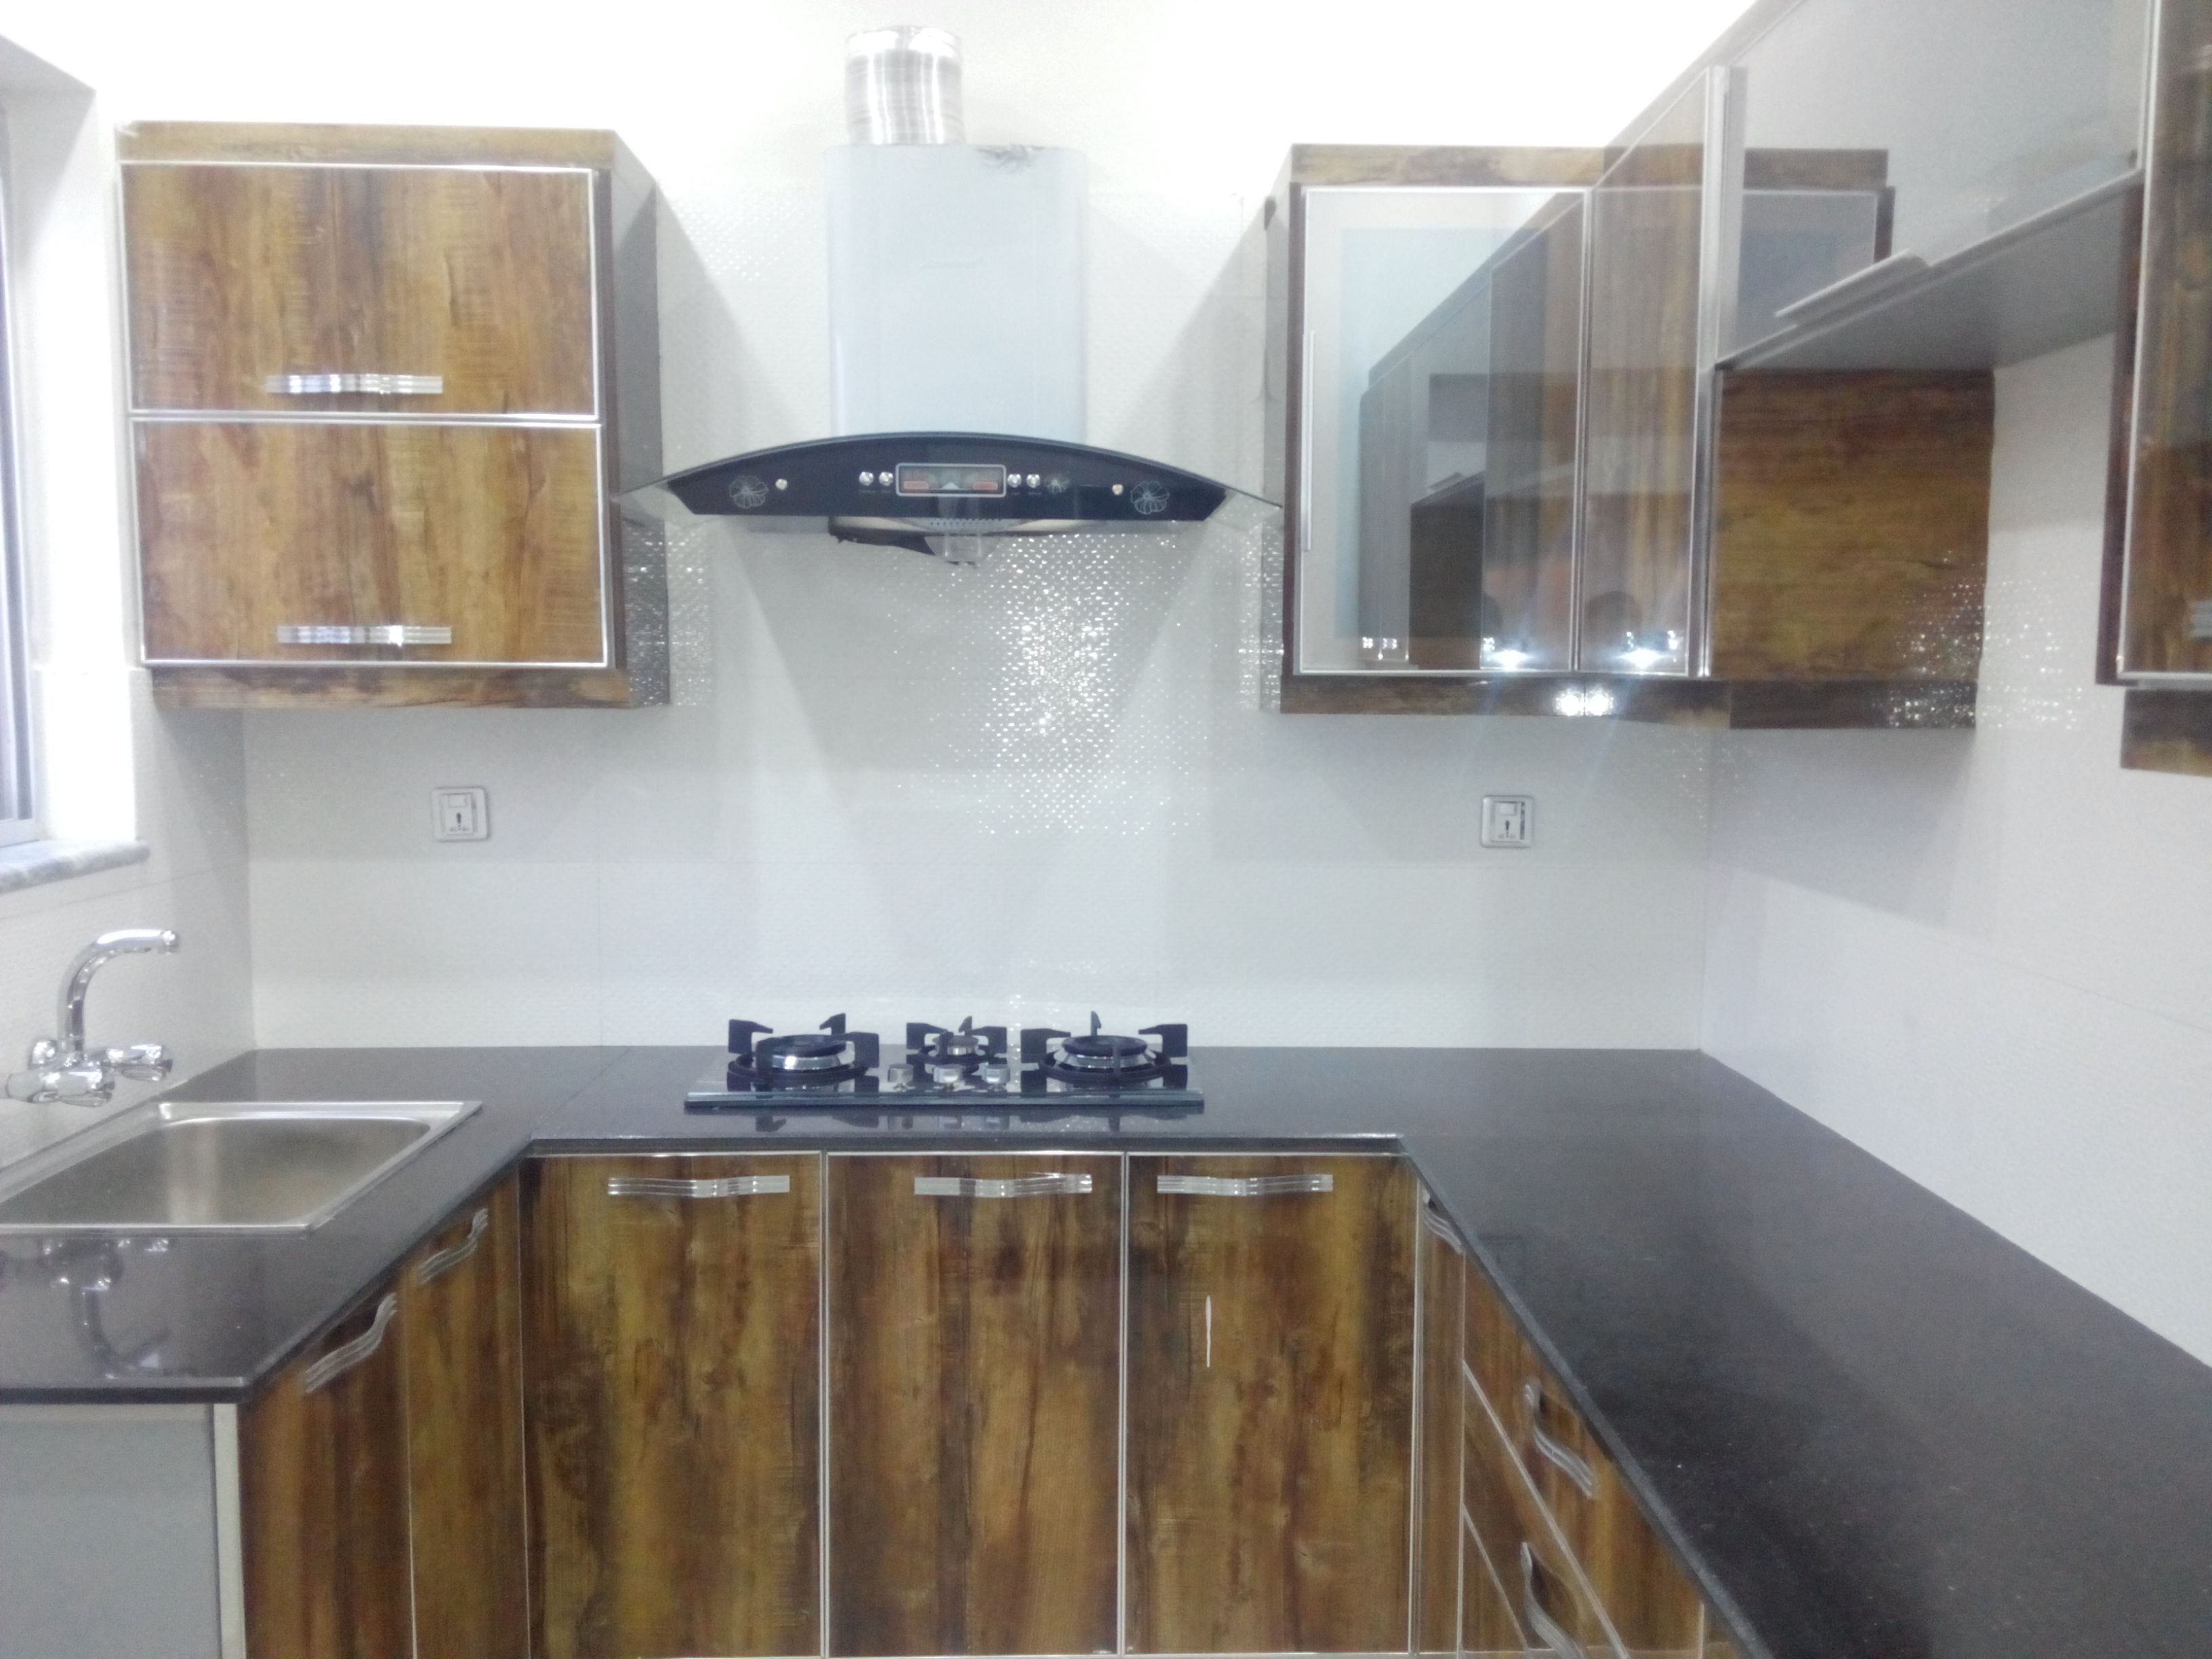 contemporary bathroom accessories lahore accessories lahore on decorating bathroom accessories lahore